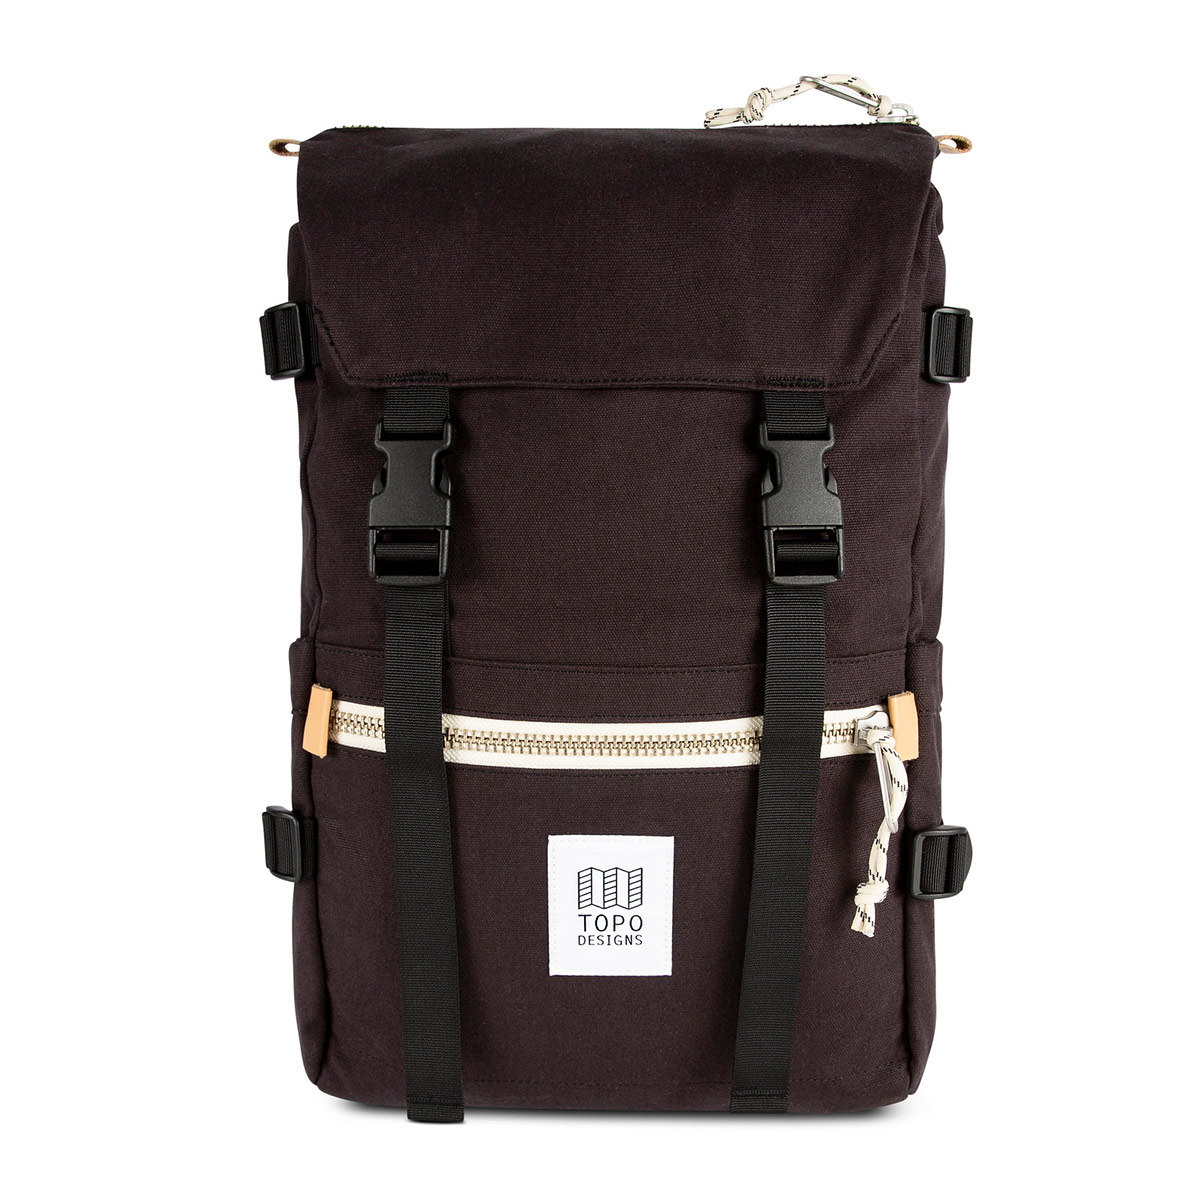 Topo Designs Rover Pack Canvas Black, Mountain-inspired durability meets city-ready styling in the Rover Pack Canvas.